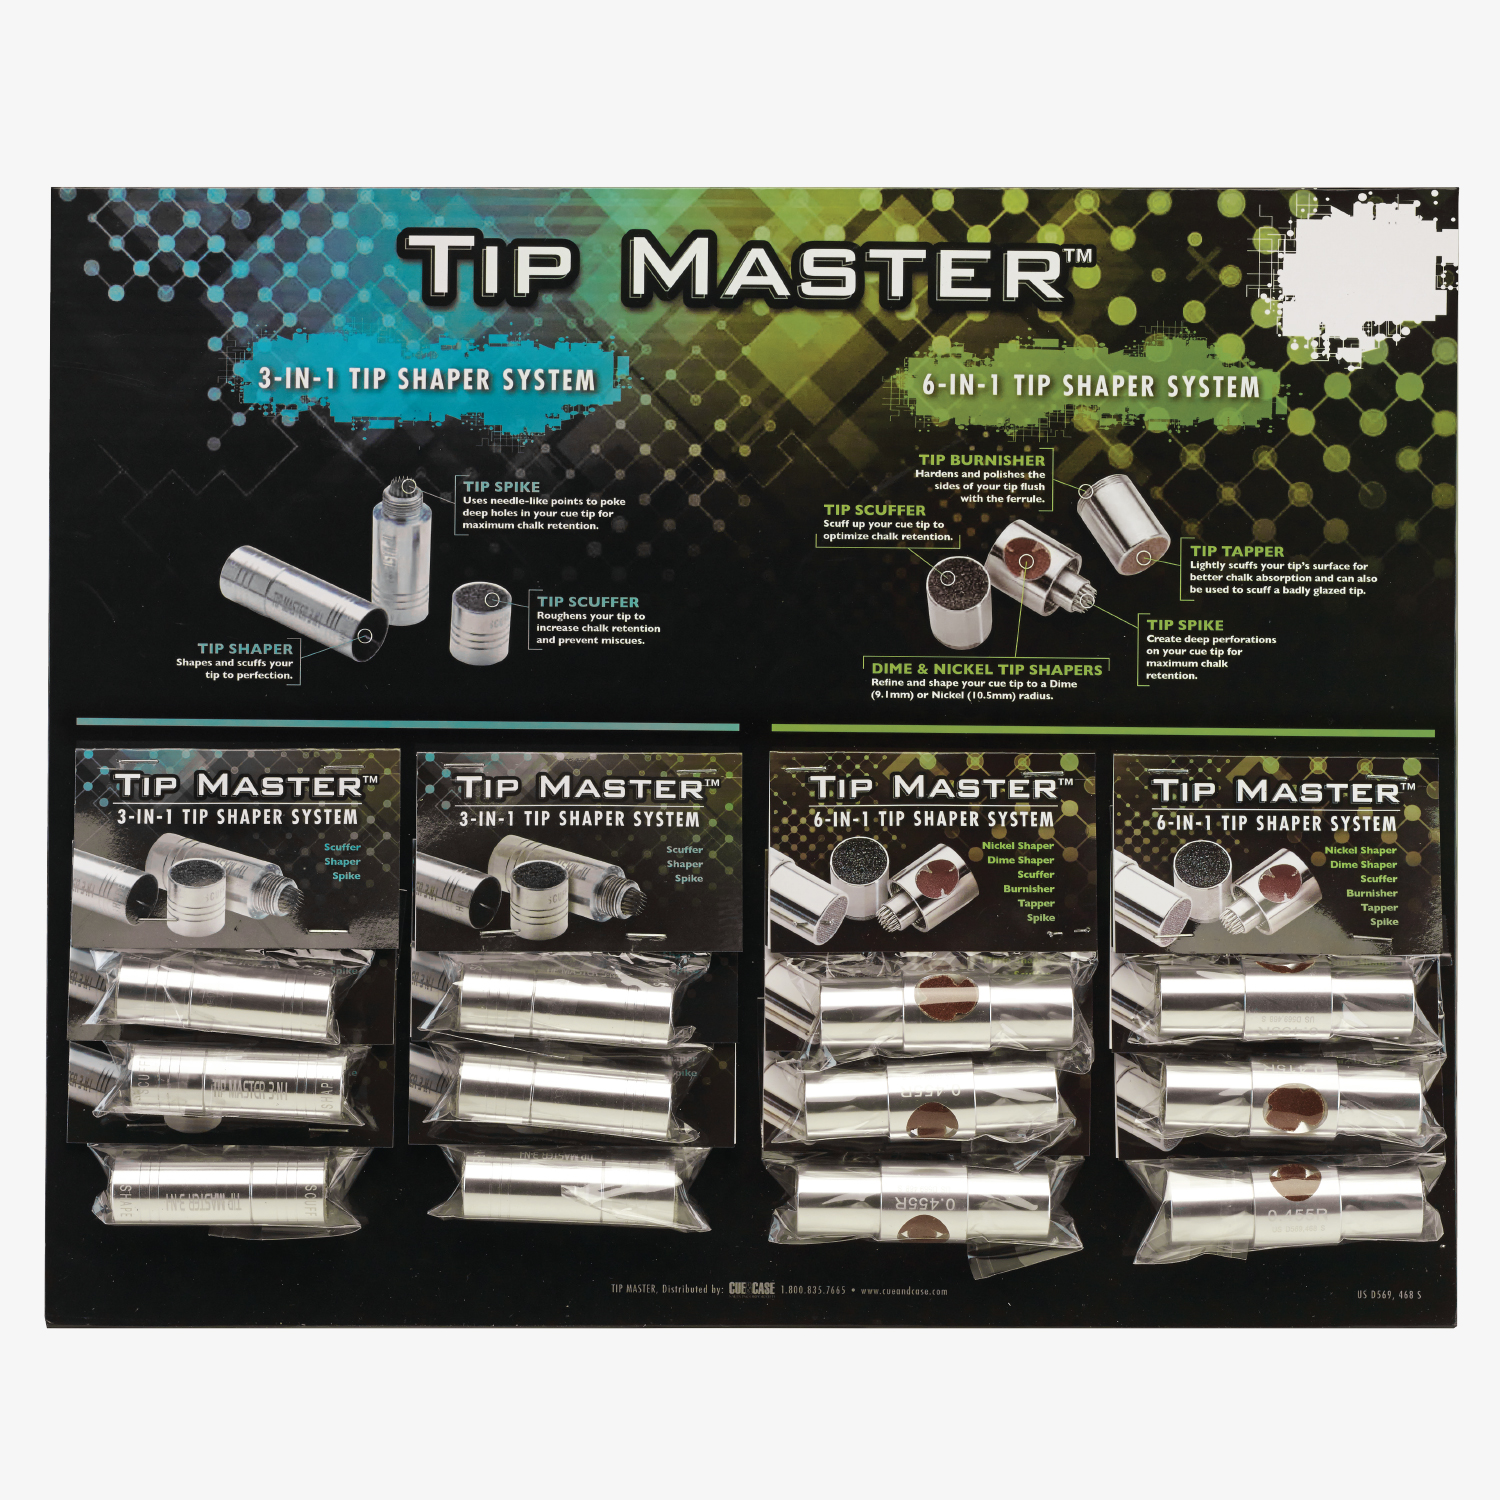 Tm3 6card Tip Master 3 In 1 Amp 6 In 1 Tip Tools Card Of 12